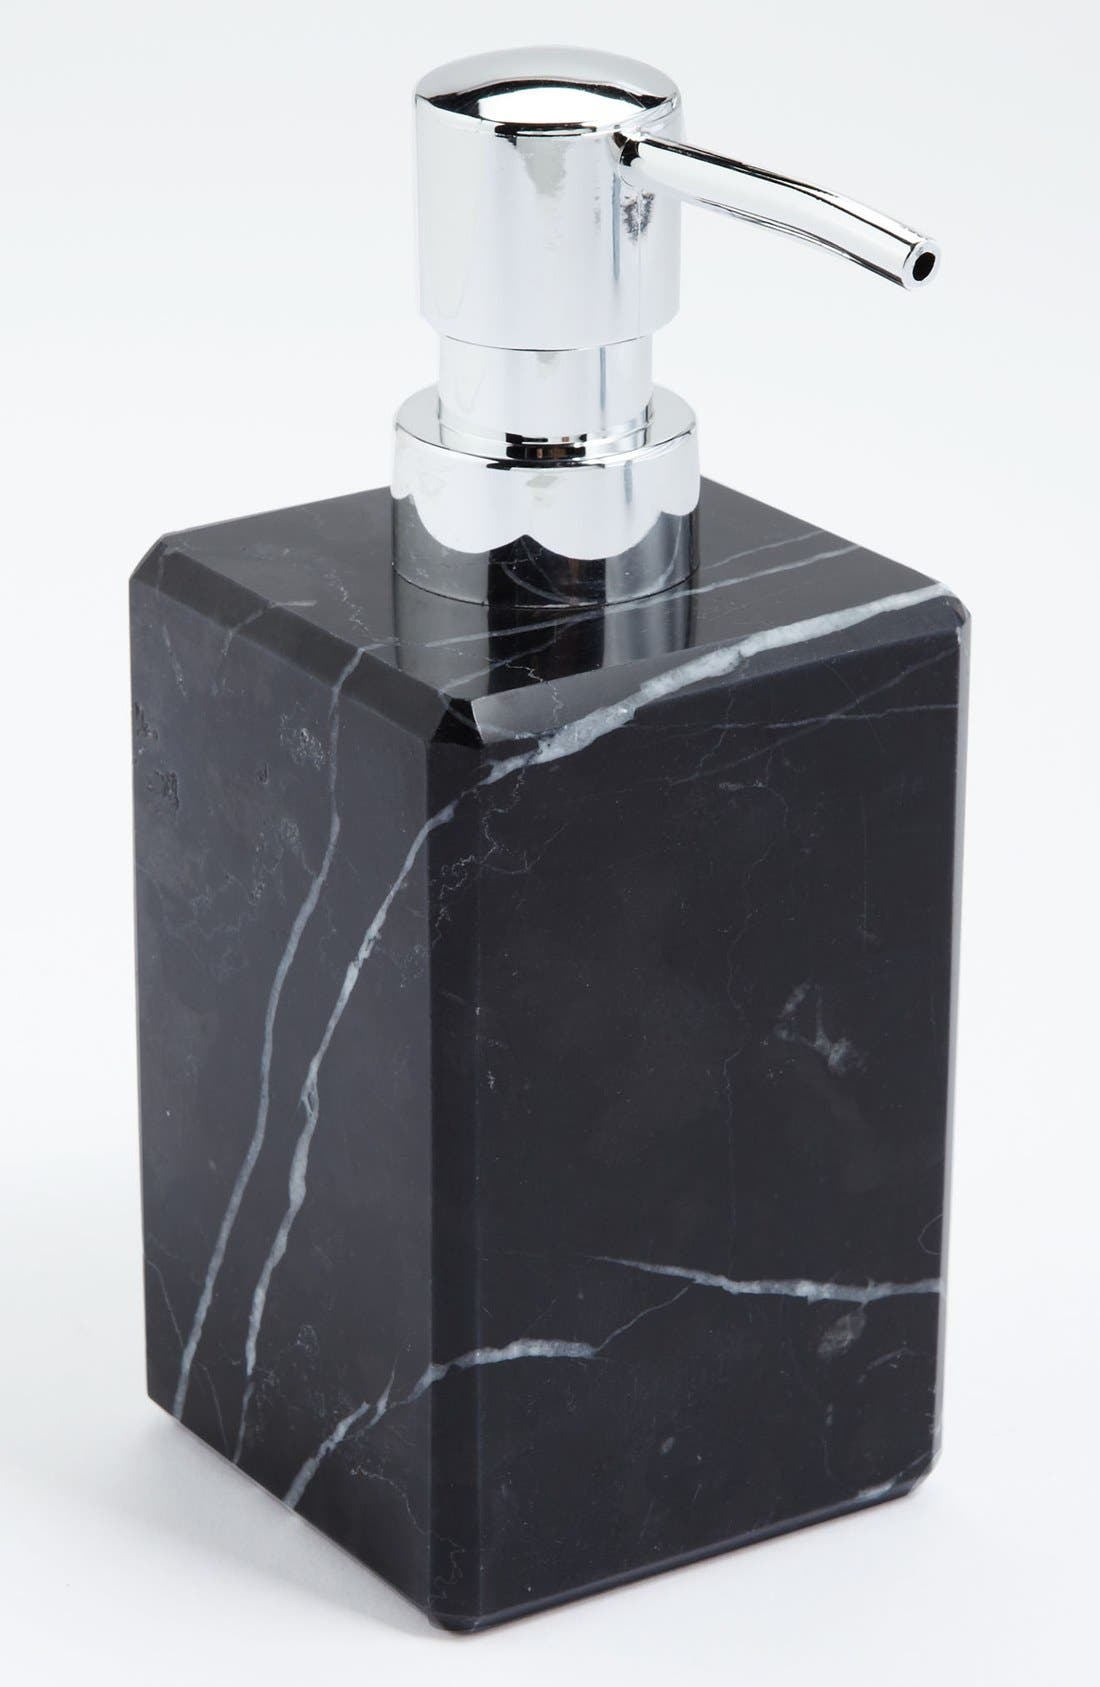 Marble Resin Soap Dispenser is rated out of 5 by 5. Rated 3 out of 5 by JL from Needs improvement This dispenser holds a little less soap than their standard bottles of soap, so when you put the handle in, soap comes spilling coolzloadwok.ga: $